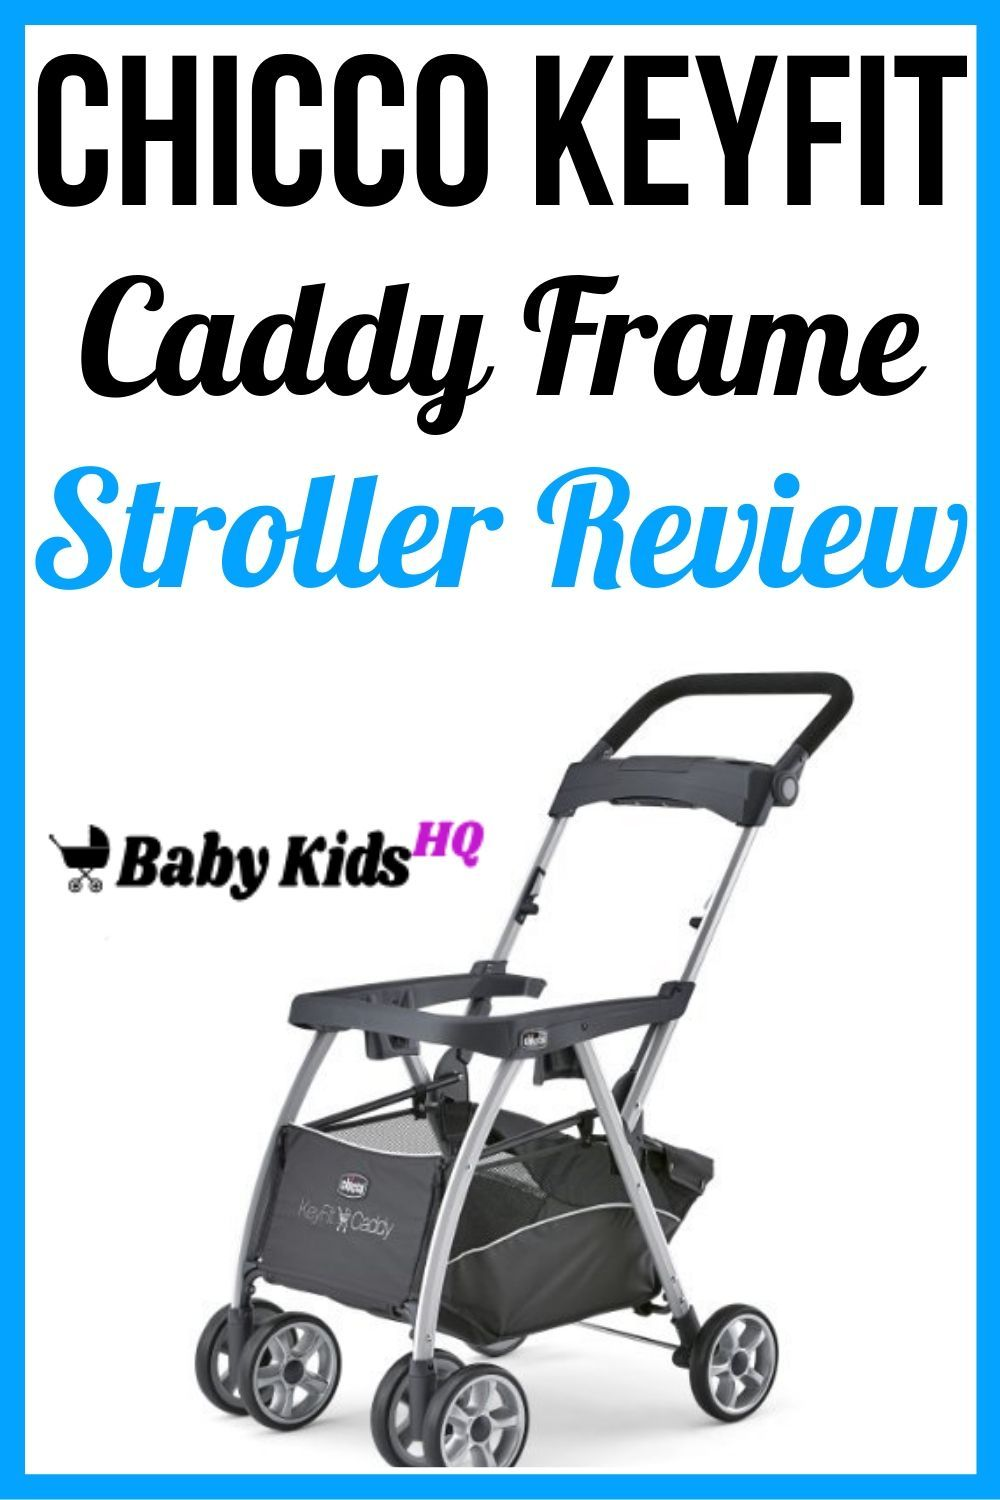 Chicco Keyfit Caddy Frame Stroller Review 2020 Best